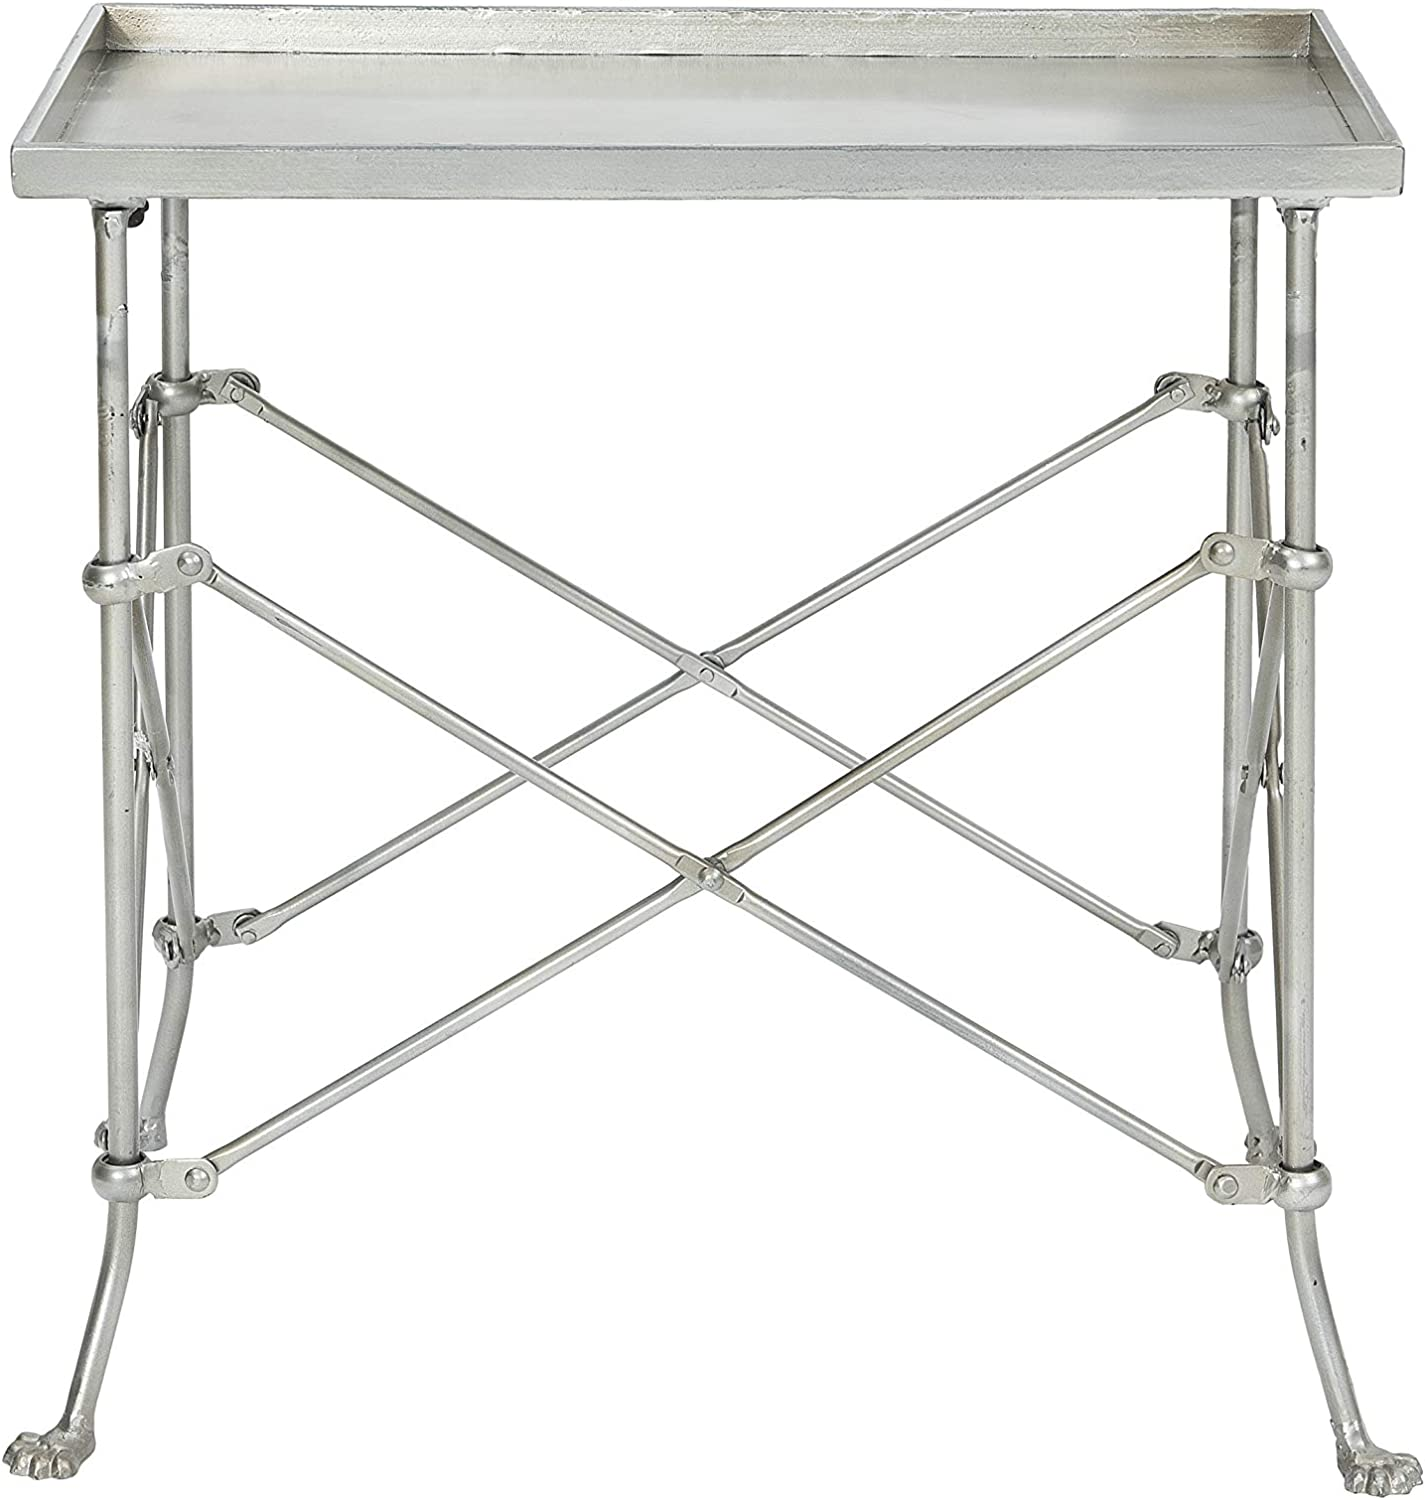 Silver accent table with rectangular tray top and folding style legs